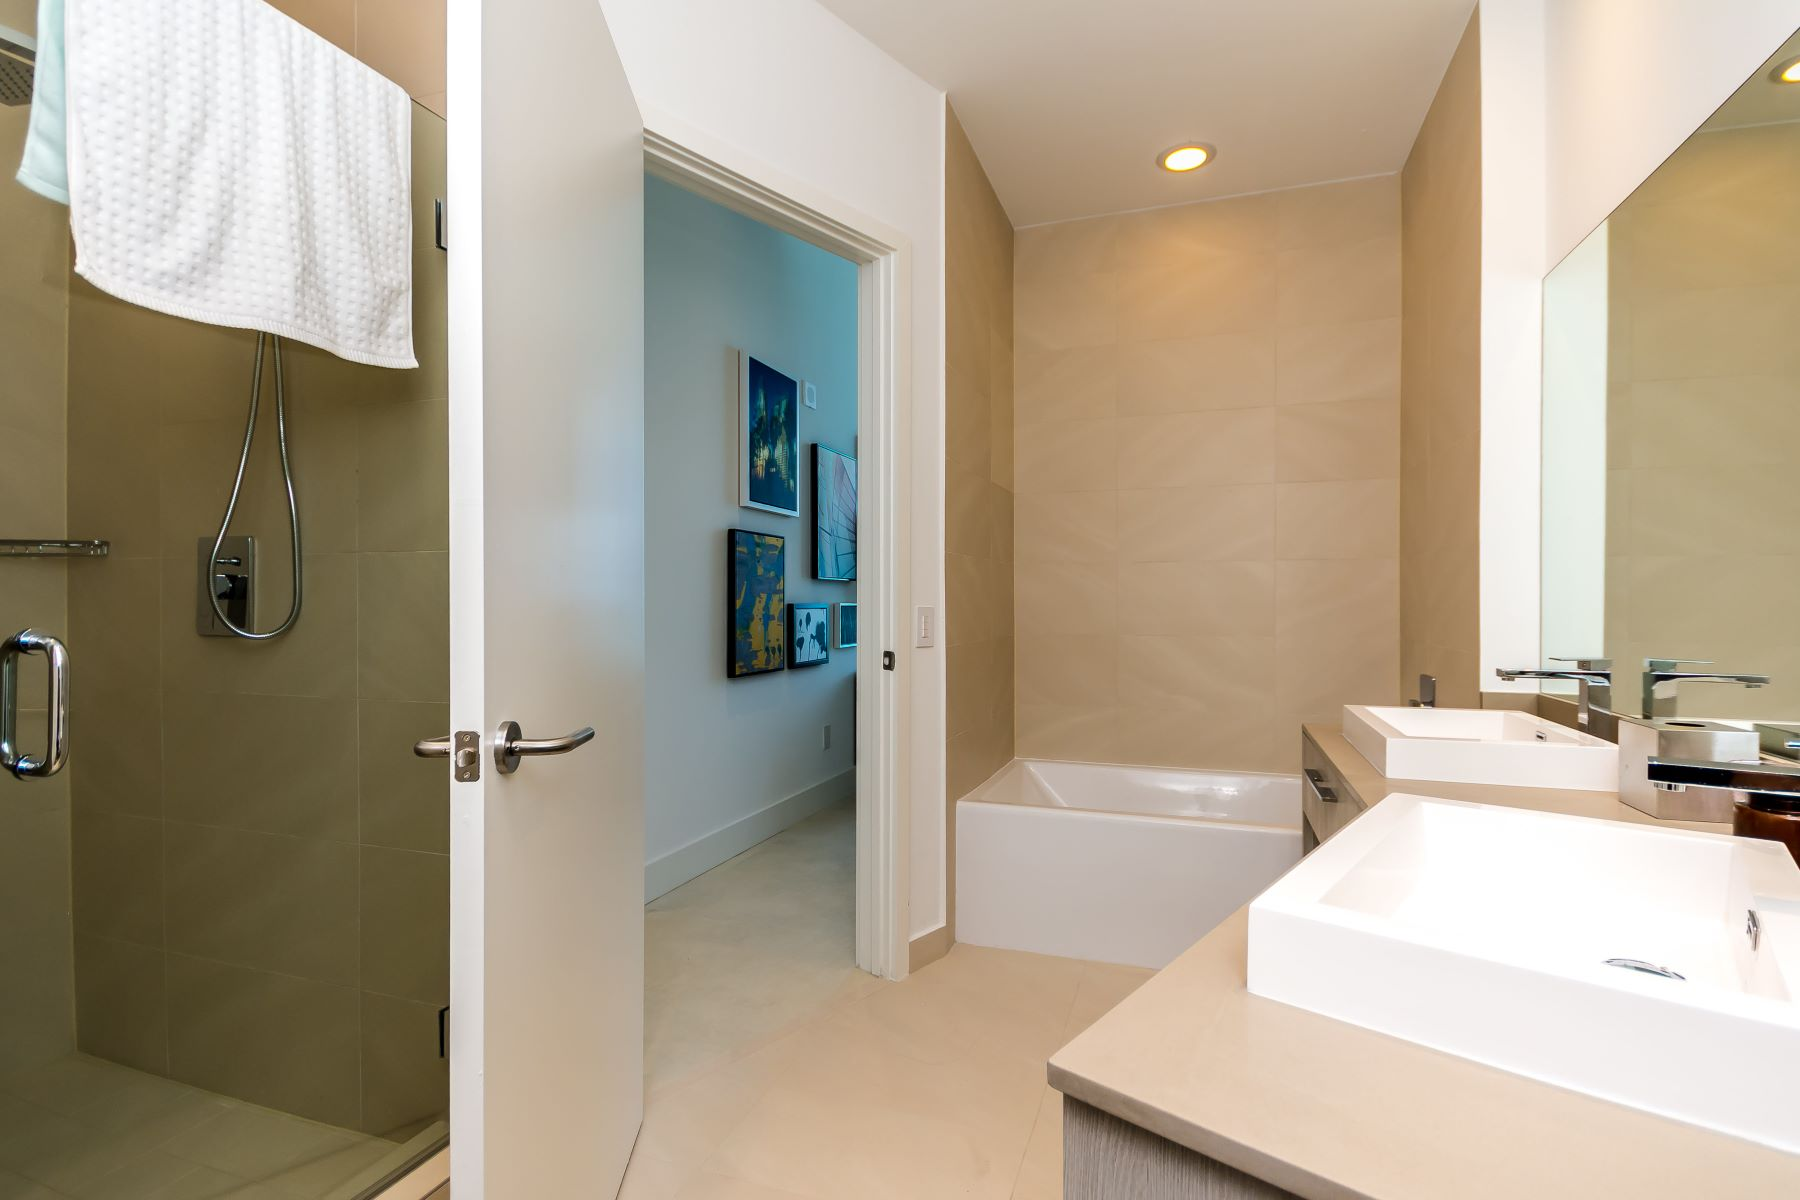 Additional photo for property listing at 4111 S Ocean Drive 4111 S Ocean Drive 701 Hollywood, Florida 33019 Estados Unidos